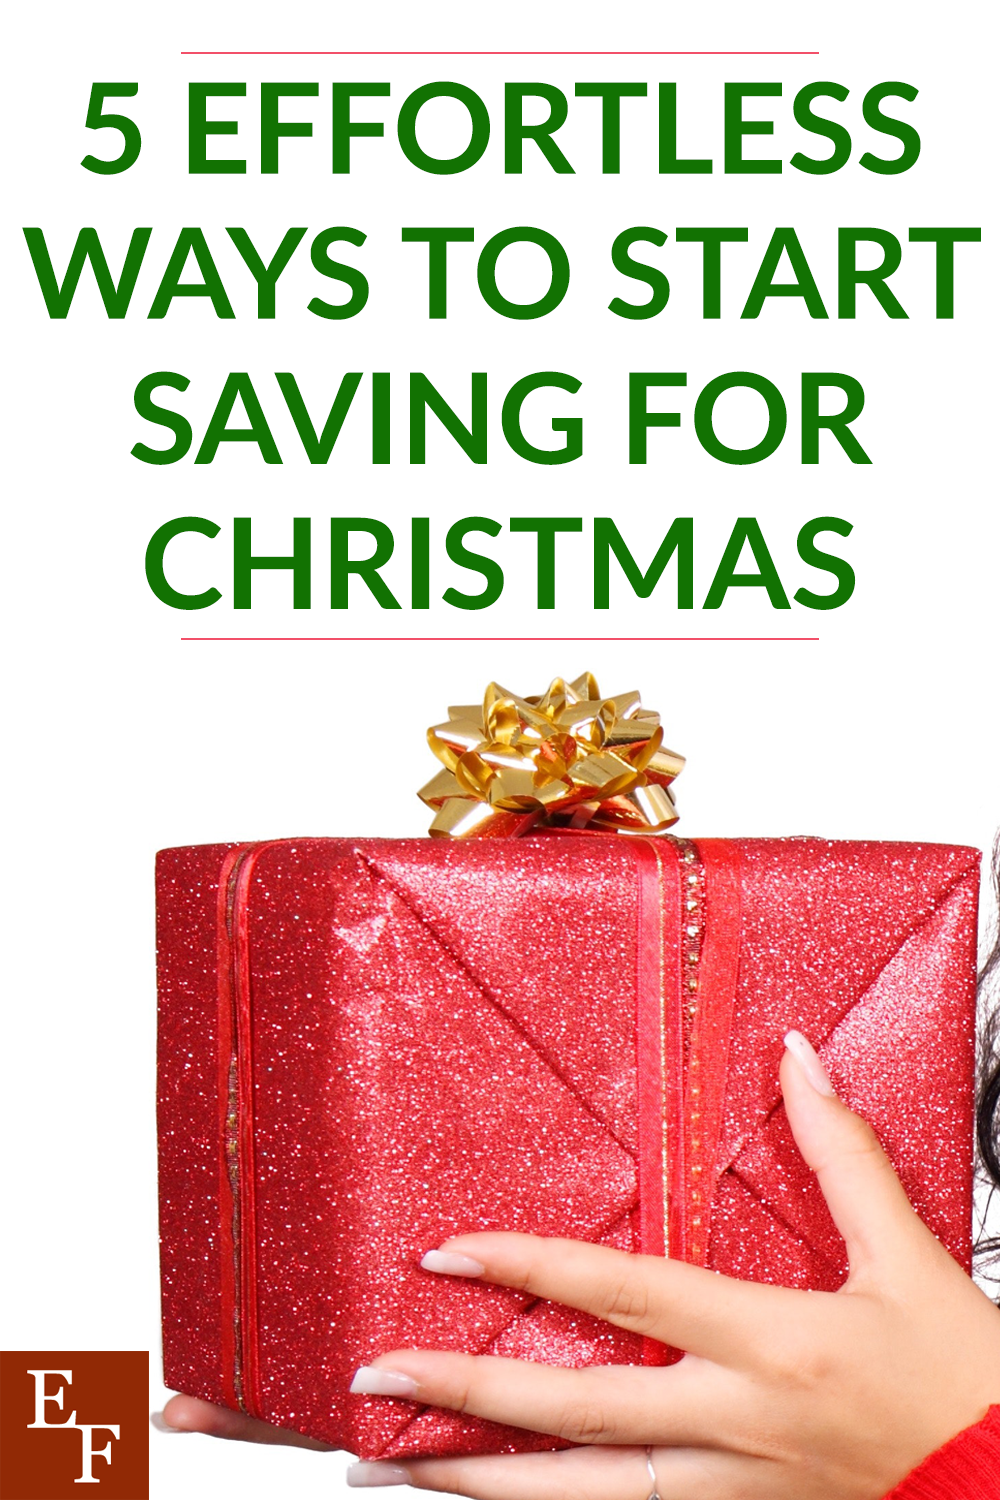 This year is flying by! Before you know it the holidays will be here. That's why now is the perfect time to start saving for Christmas.